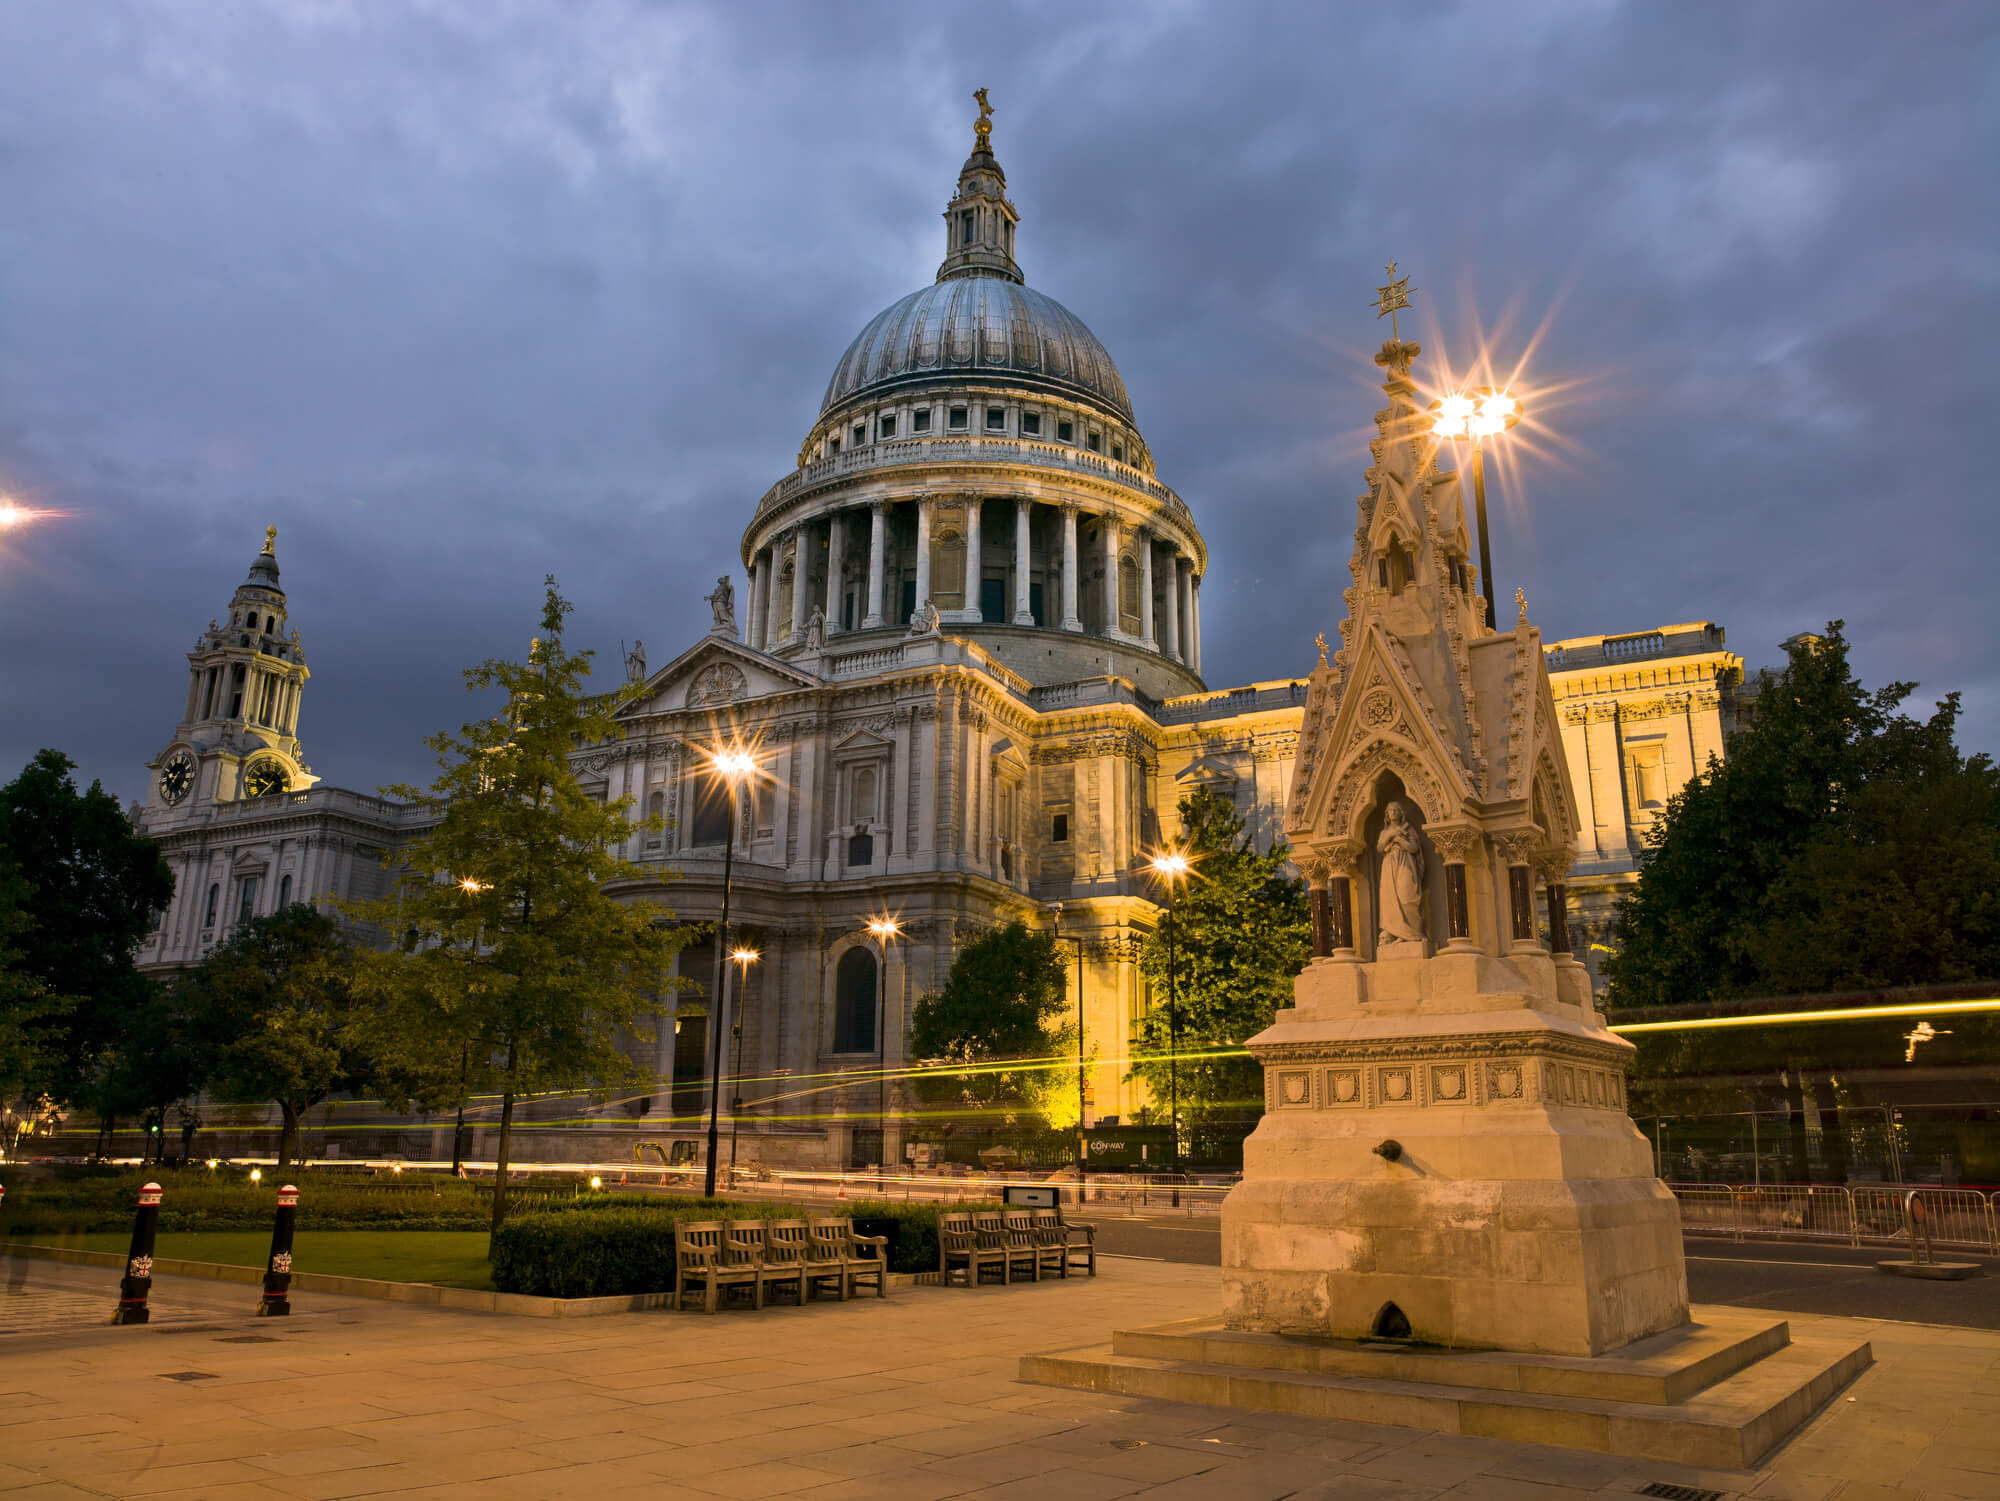 St Paul's Cathedral Night Lights wallpaper mural